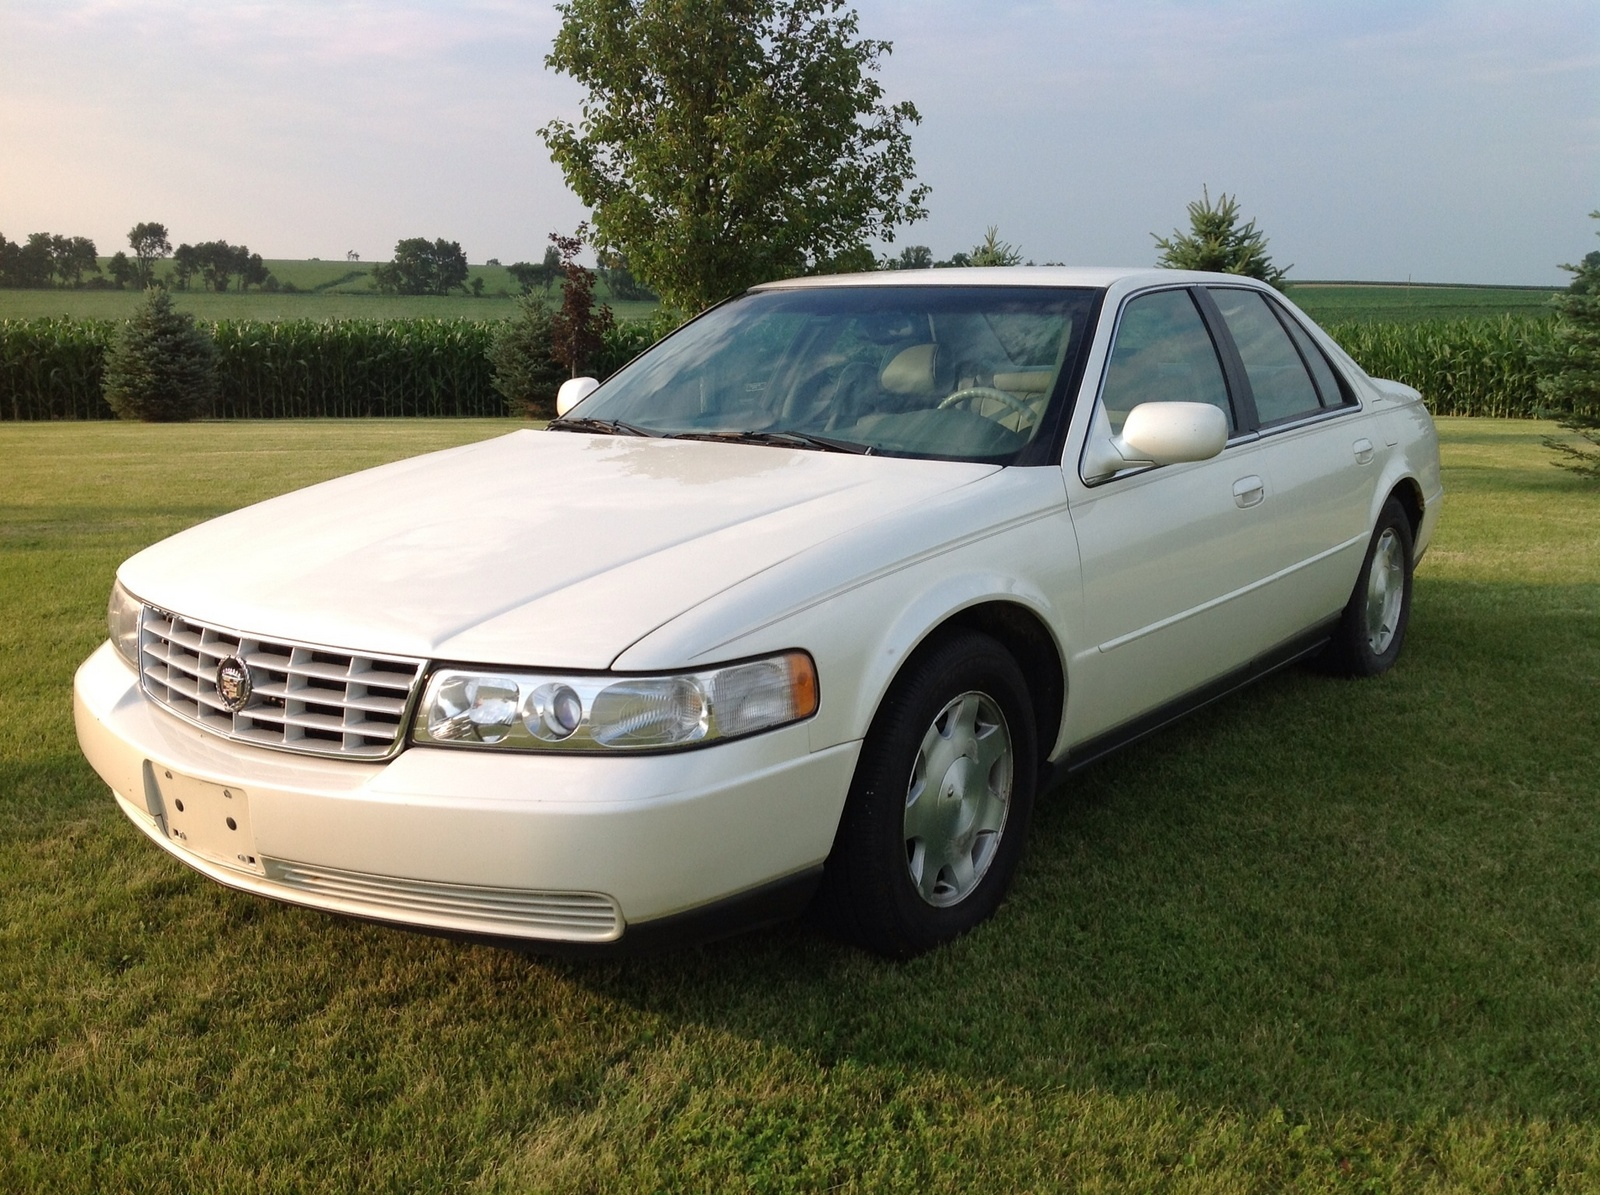 2000 cadillac seville overview cargurus. Cars Review. Best American Auto & Cars Review